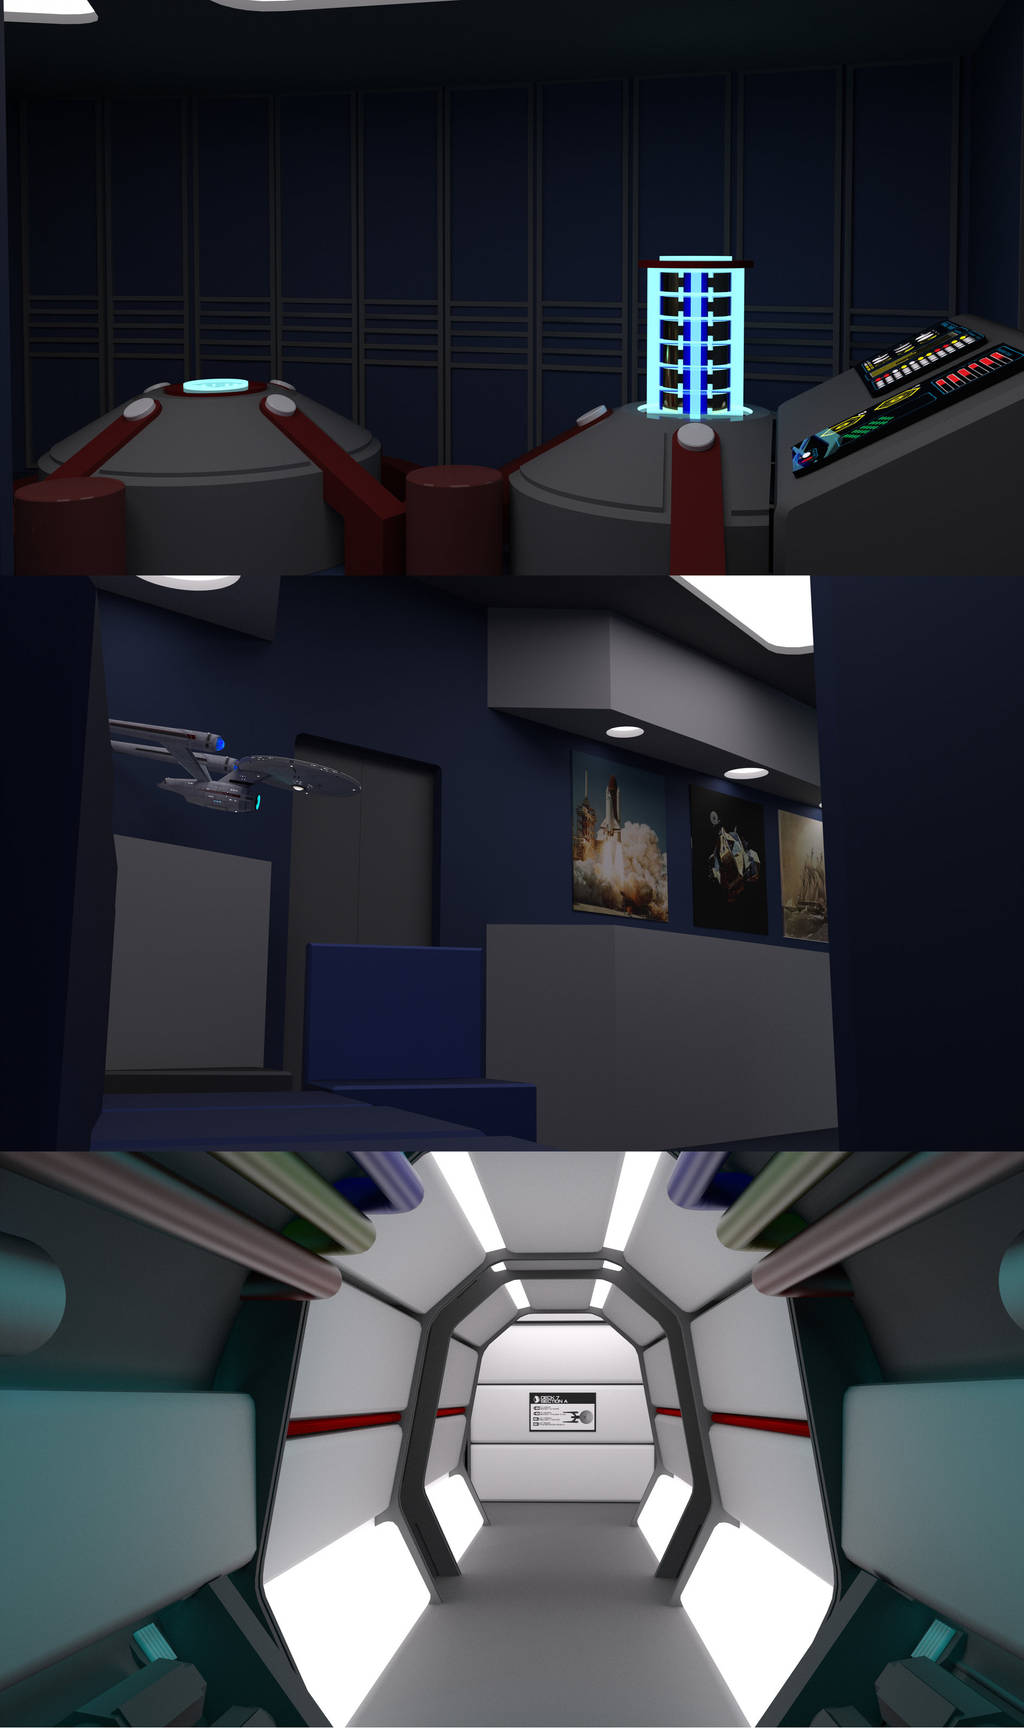 23_century_transporter_buffer__lounge_and_corridor_by_ashleytinger_dd13p6c-fullview.jpg